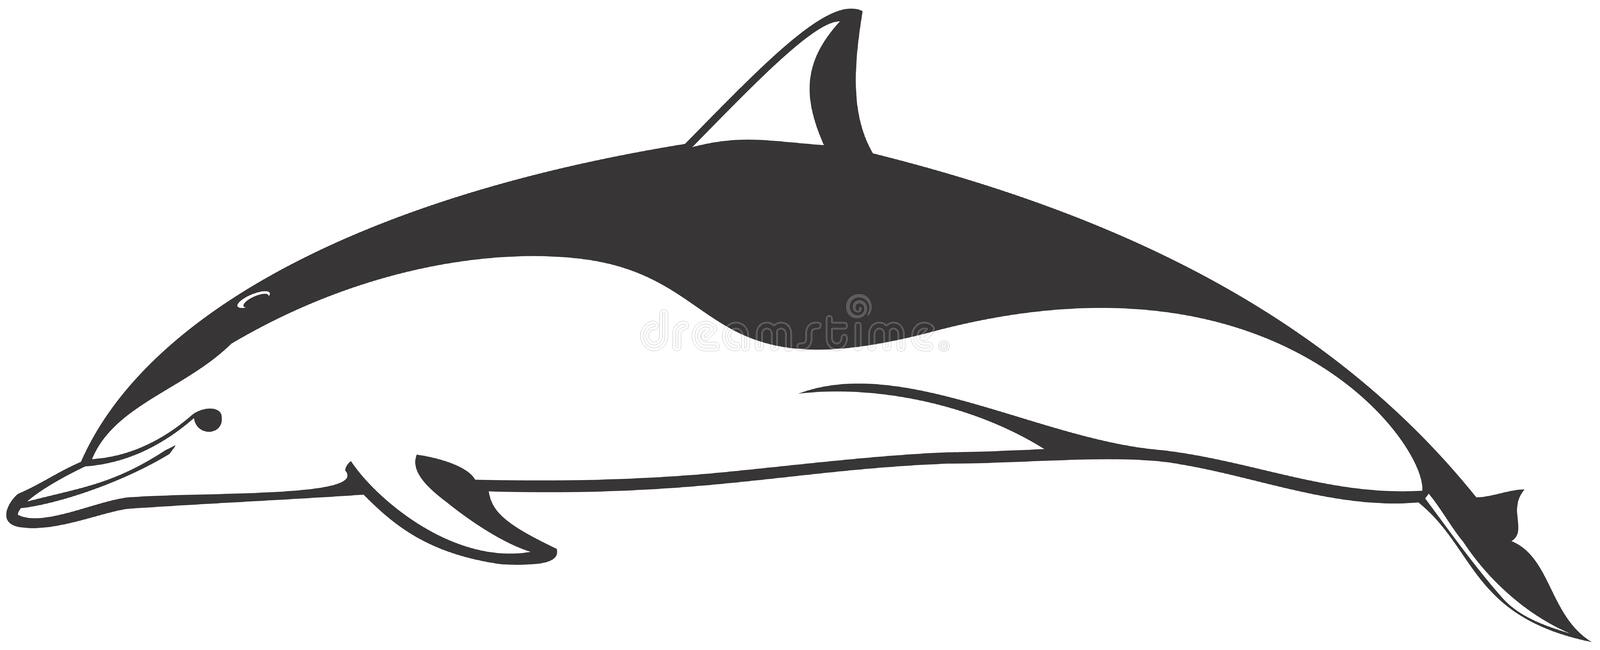 Clymene Dolphin stock illustration